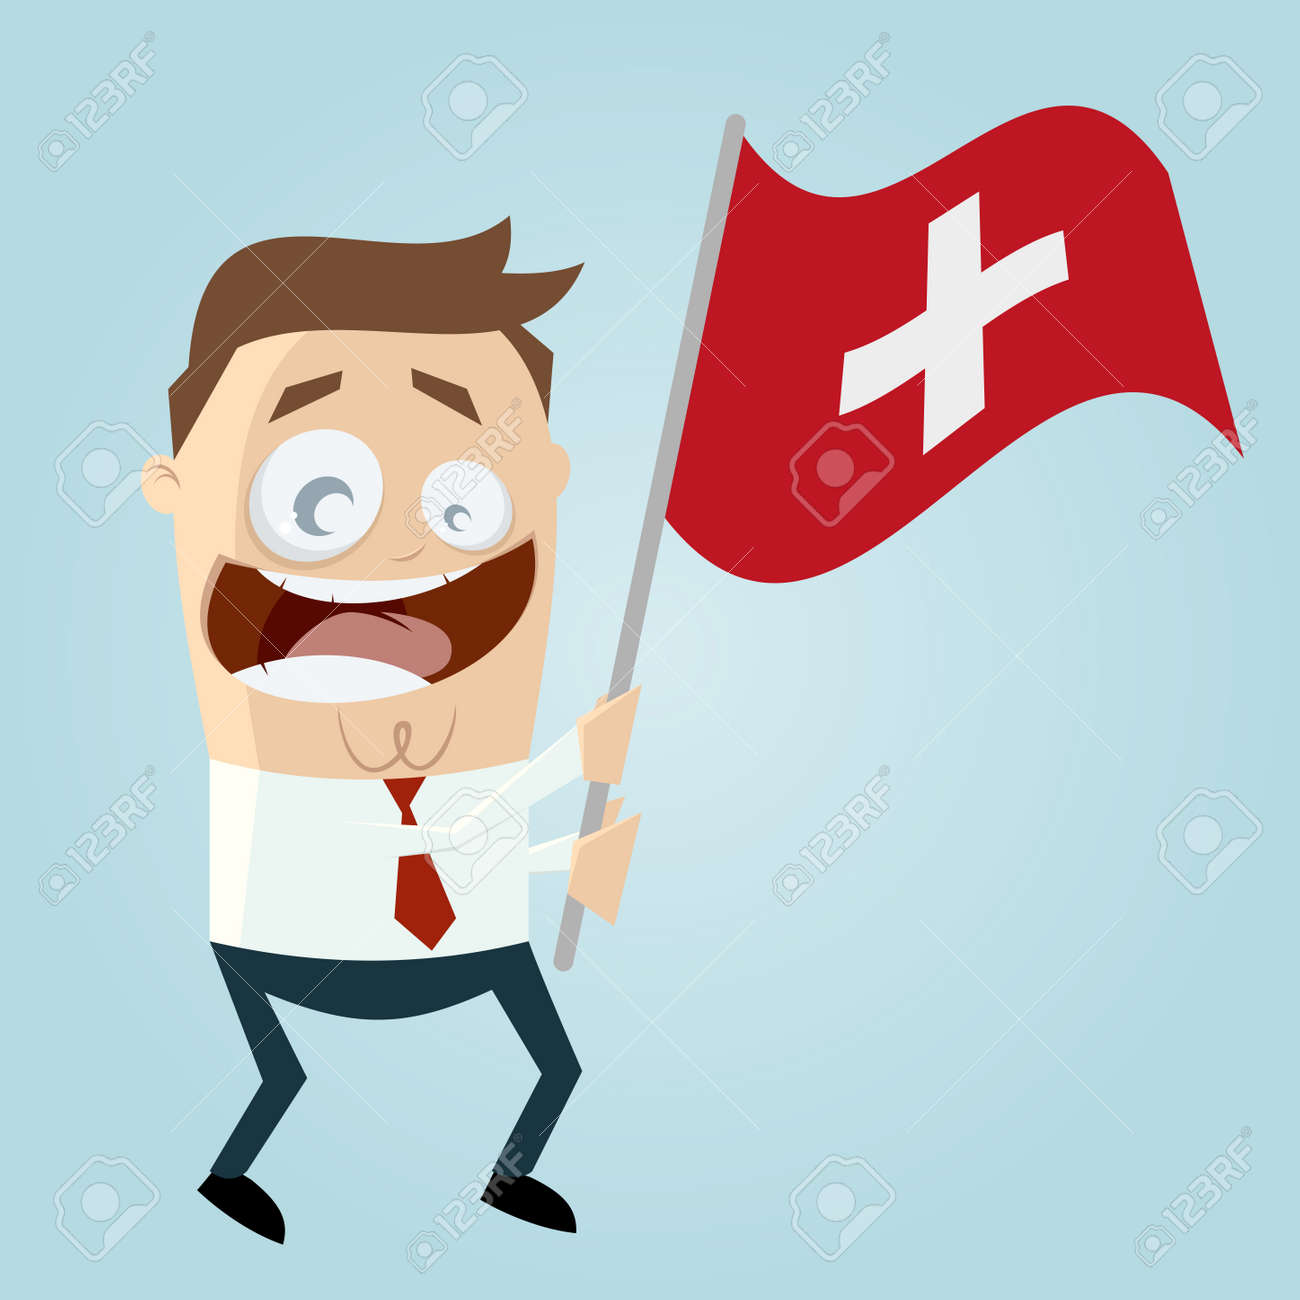 Happy Cartoon Man With Swiss Flag Royalty Free Cliparts, Vectors ...